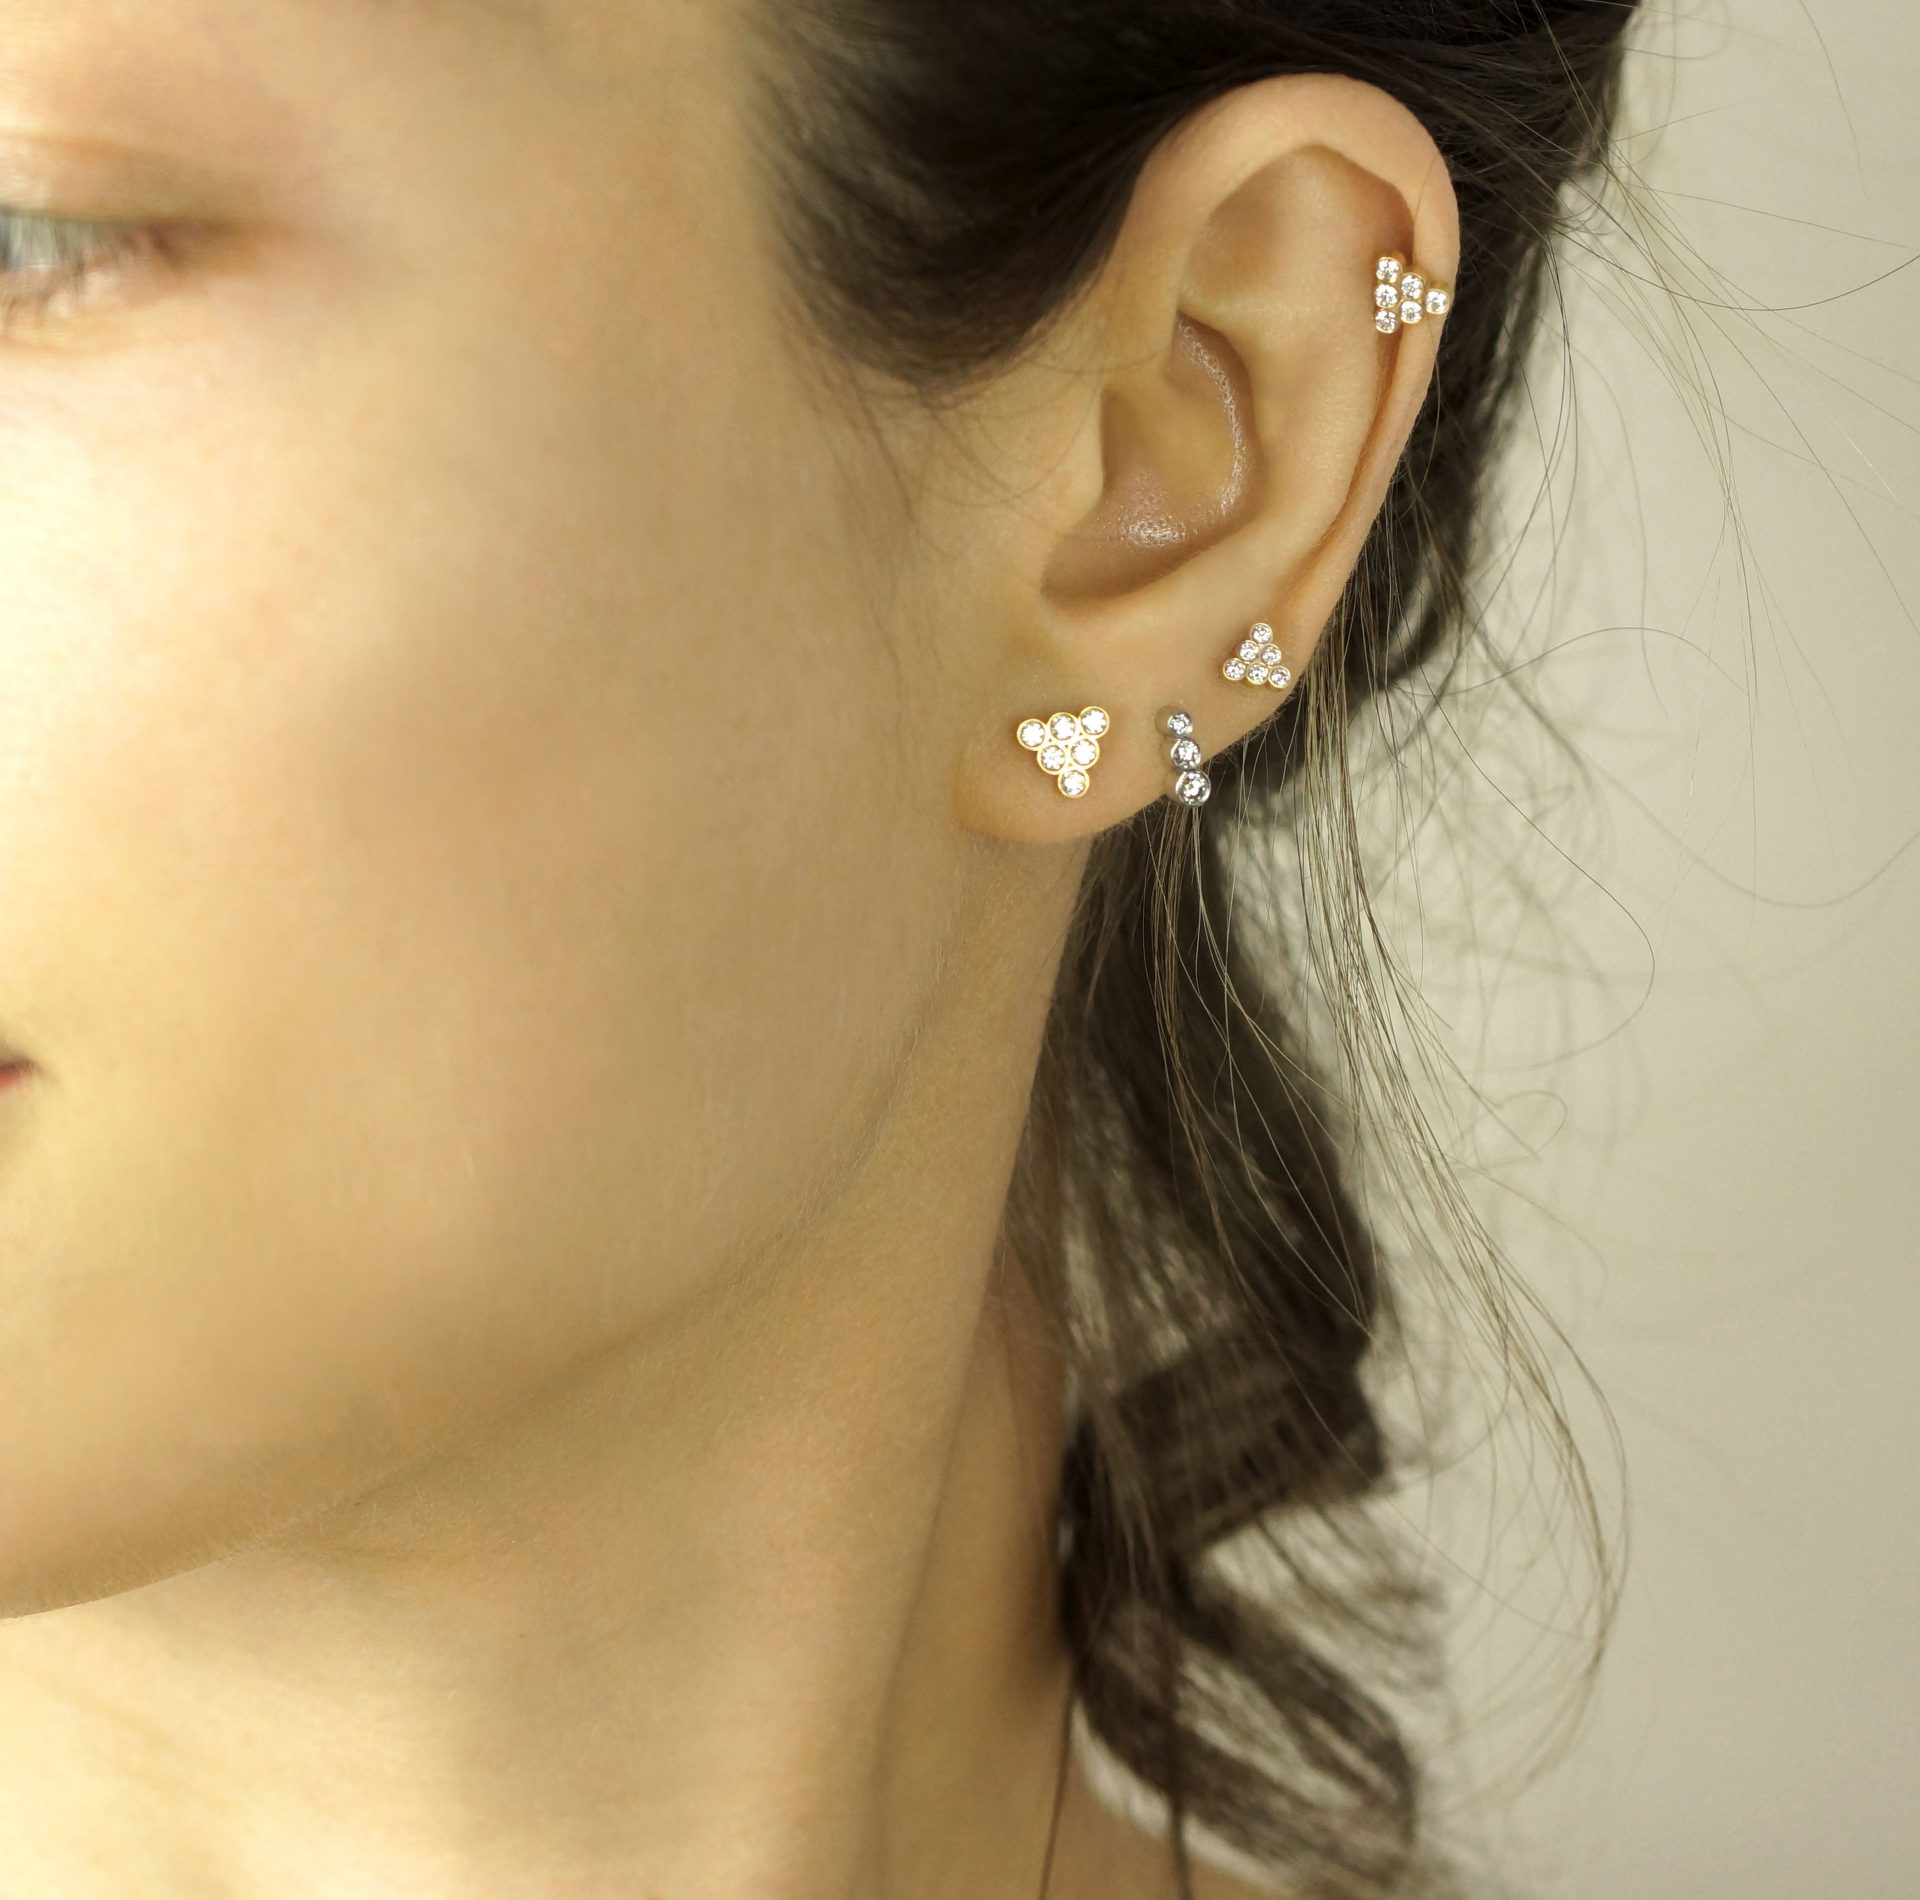 2021 Small Gifts Ideas: Luxury Piercing Jewellery